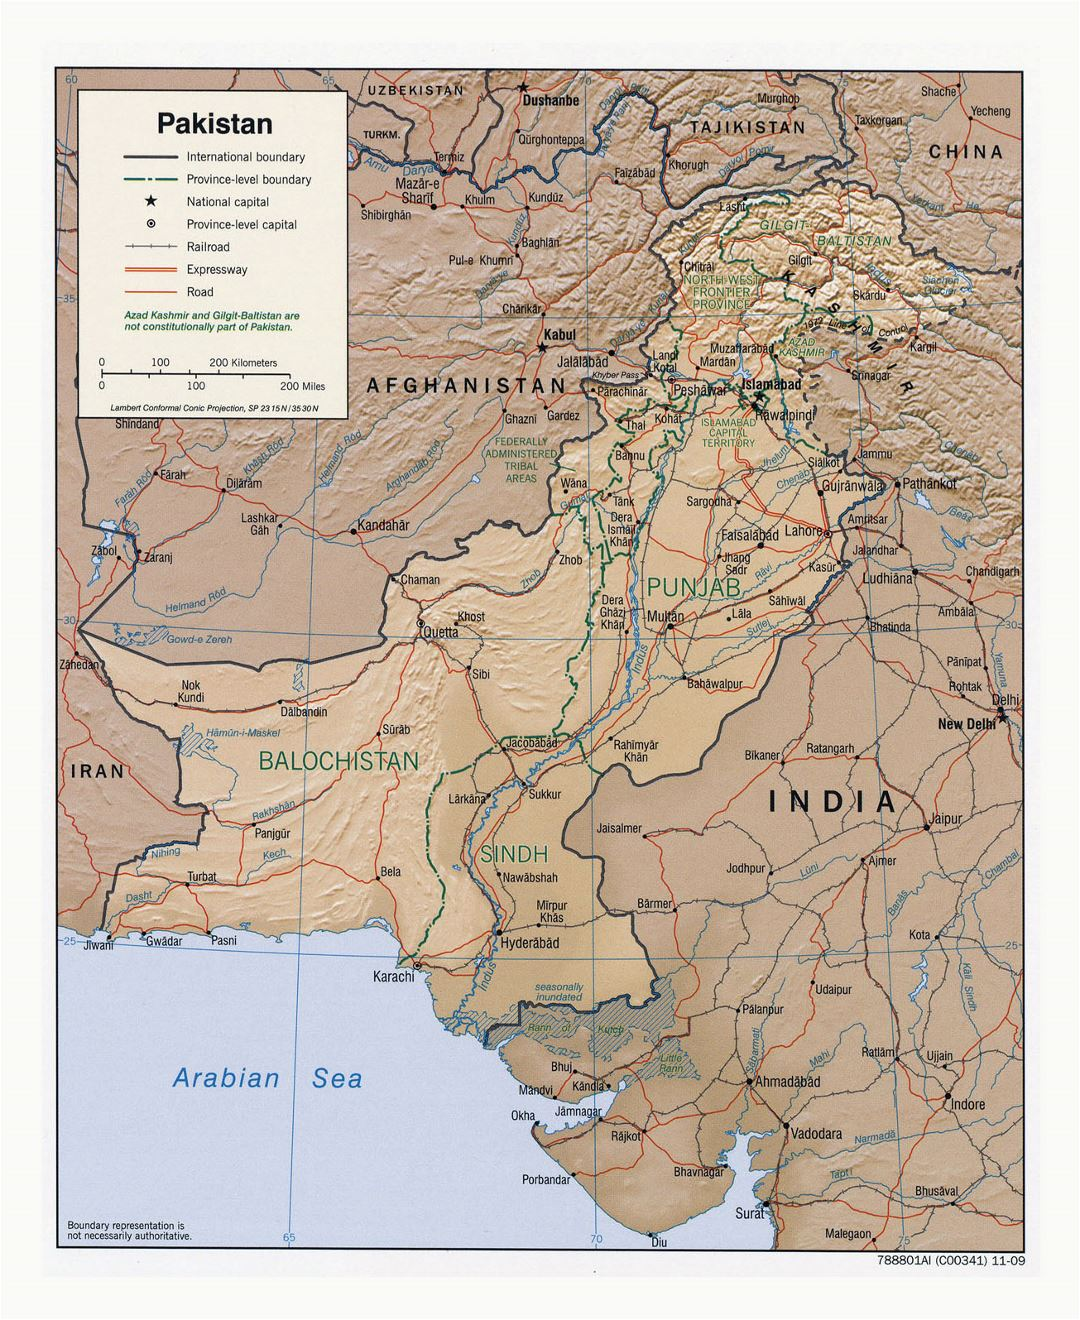 Detailed political and administrative map of Pakistan with relief, roads, railroads and major cities - 2009